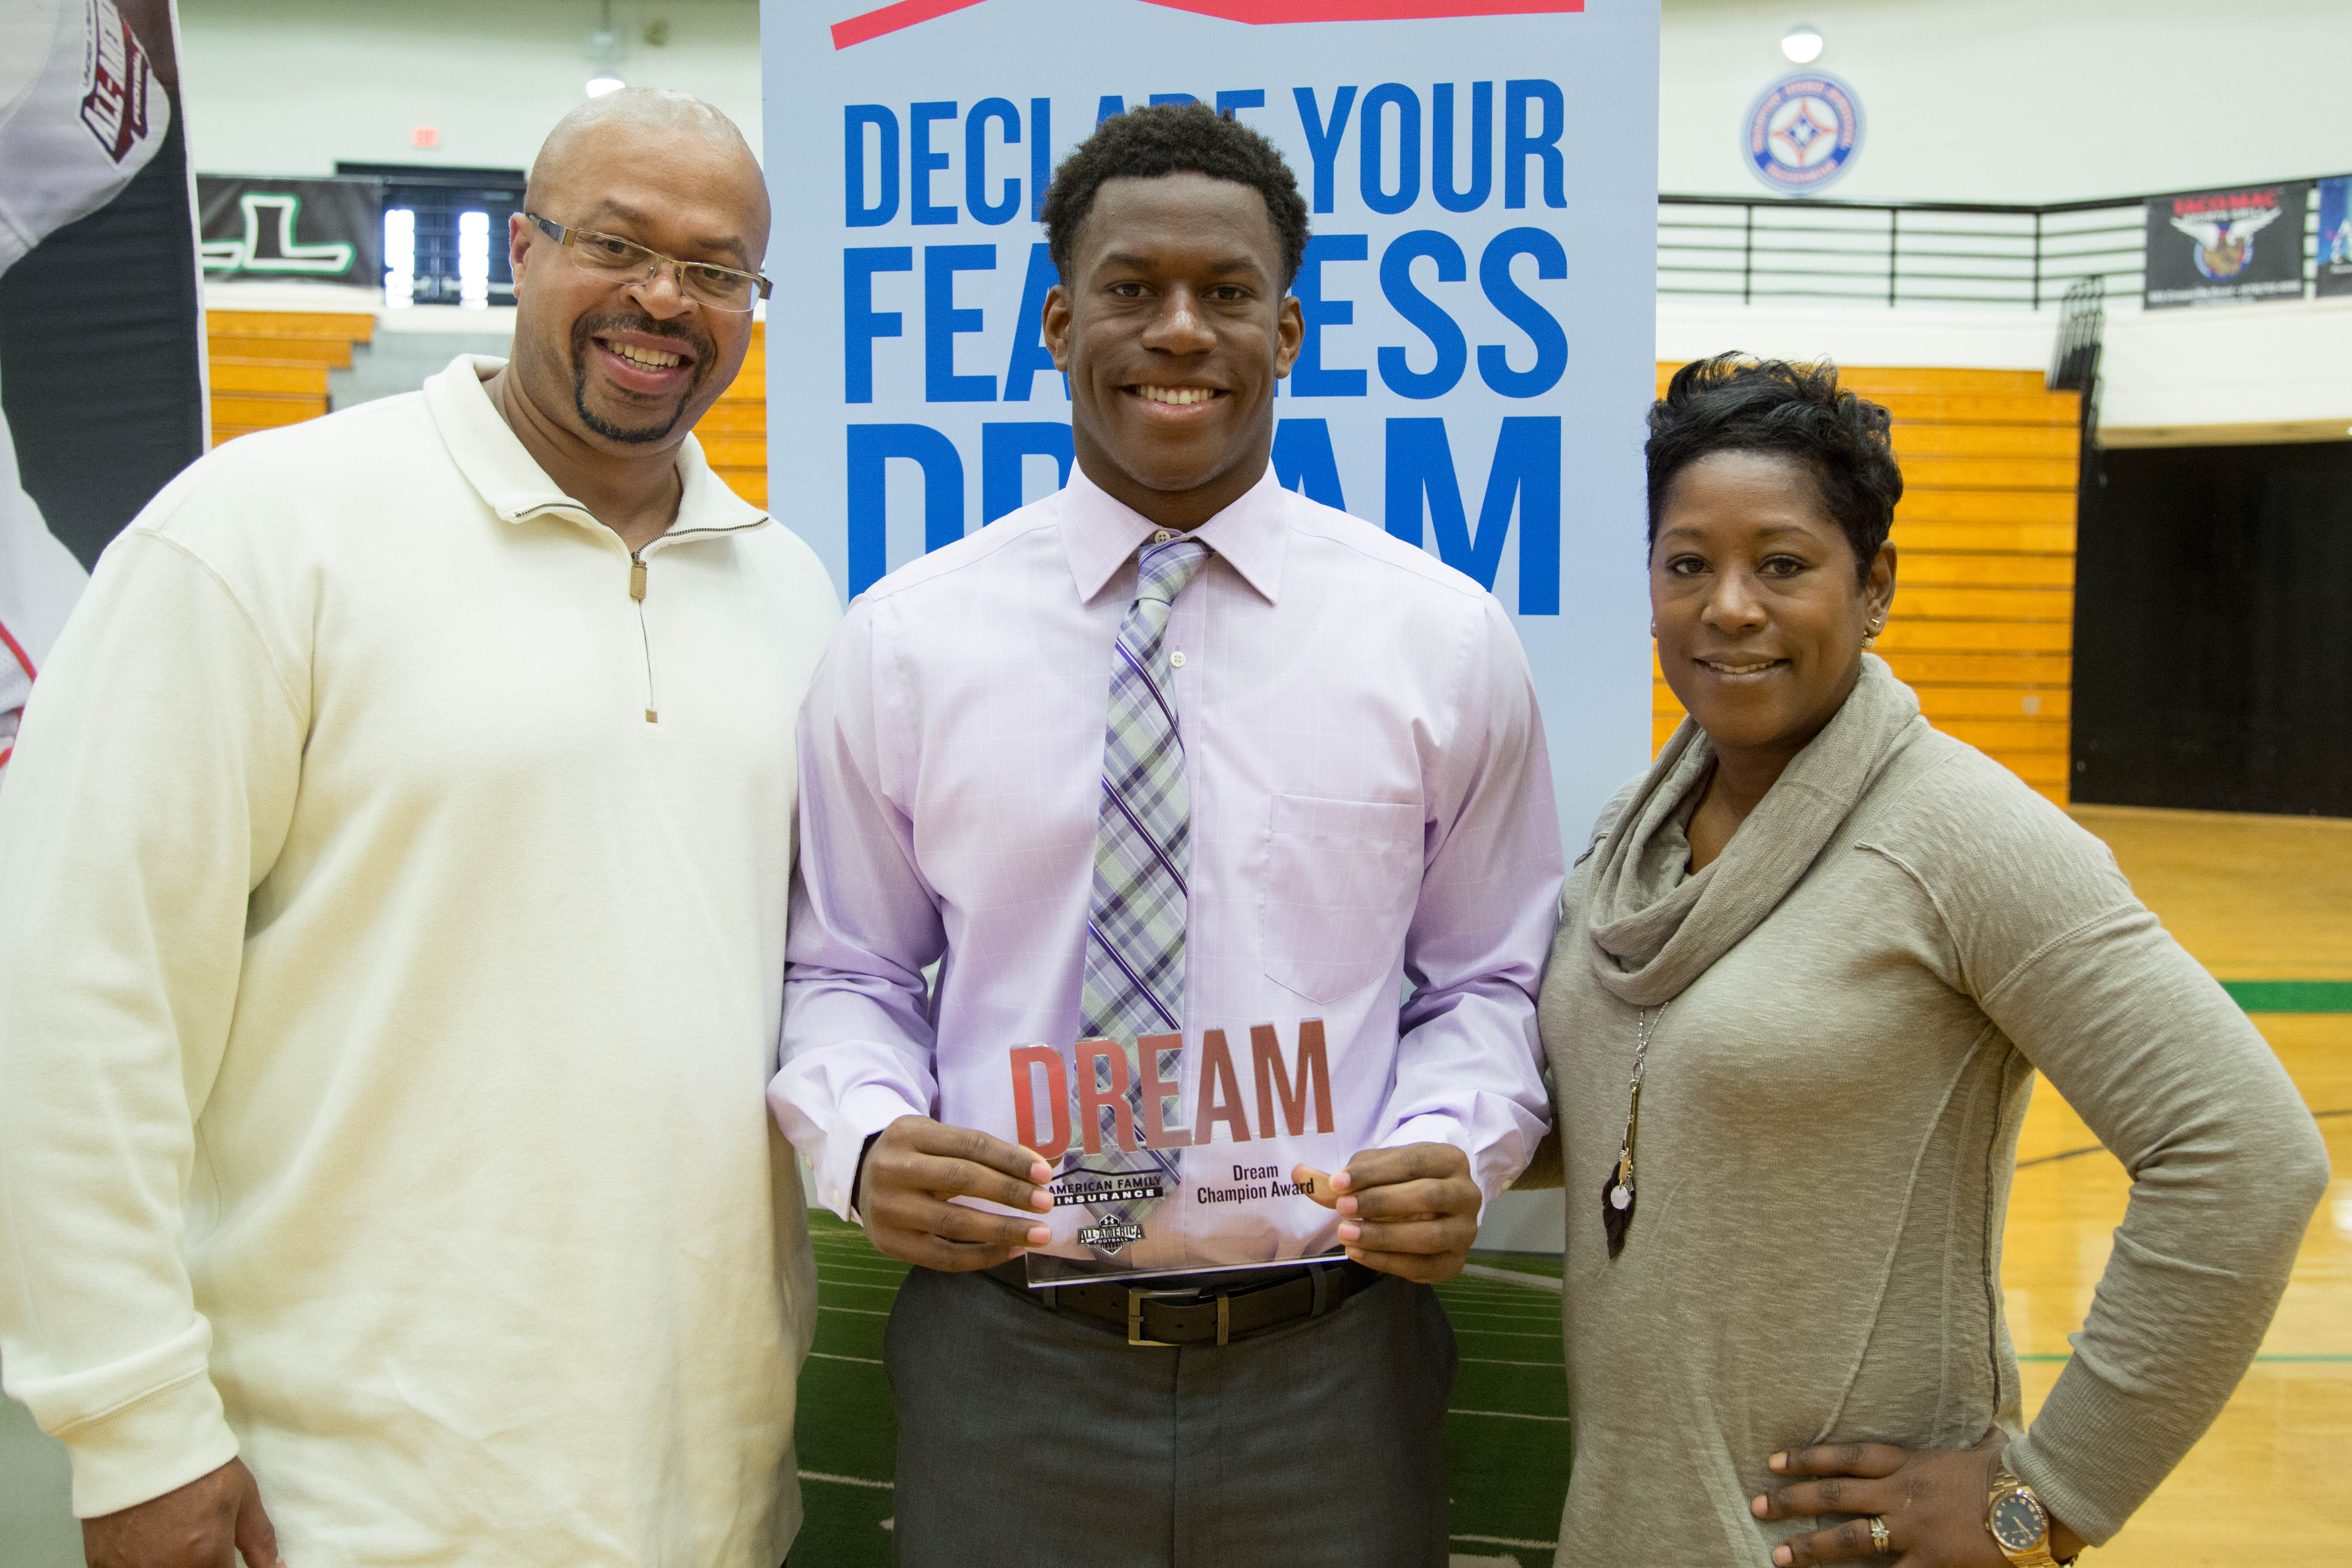 Tre' Lamar awarded his Dream Champions award to his parents, George and Ilysse (Photo: Intersport)